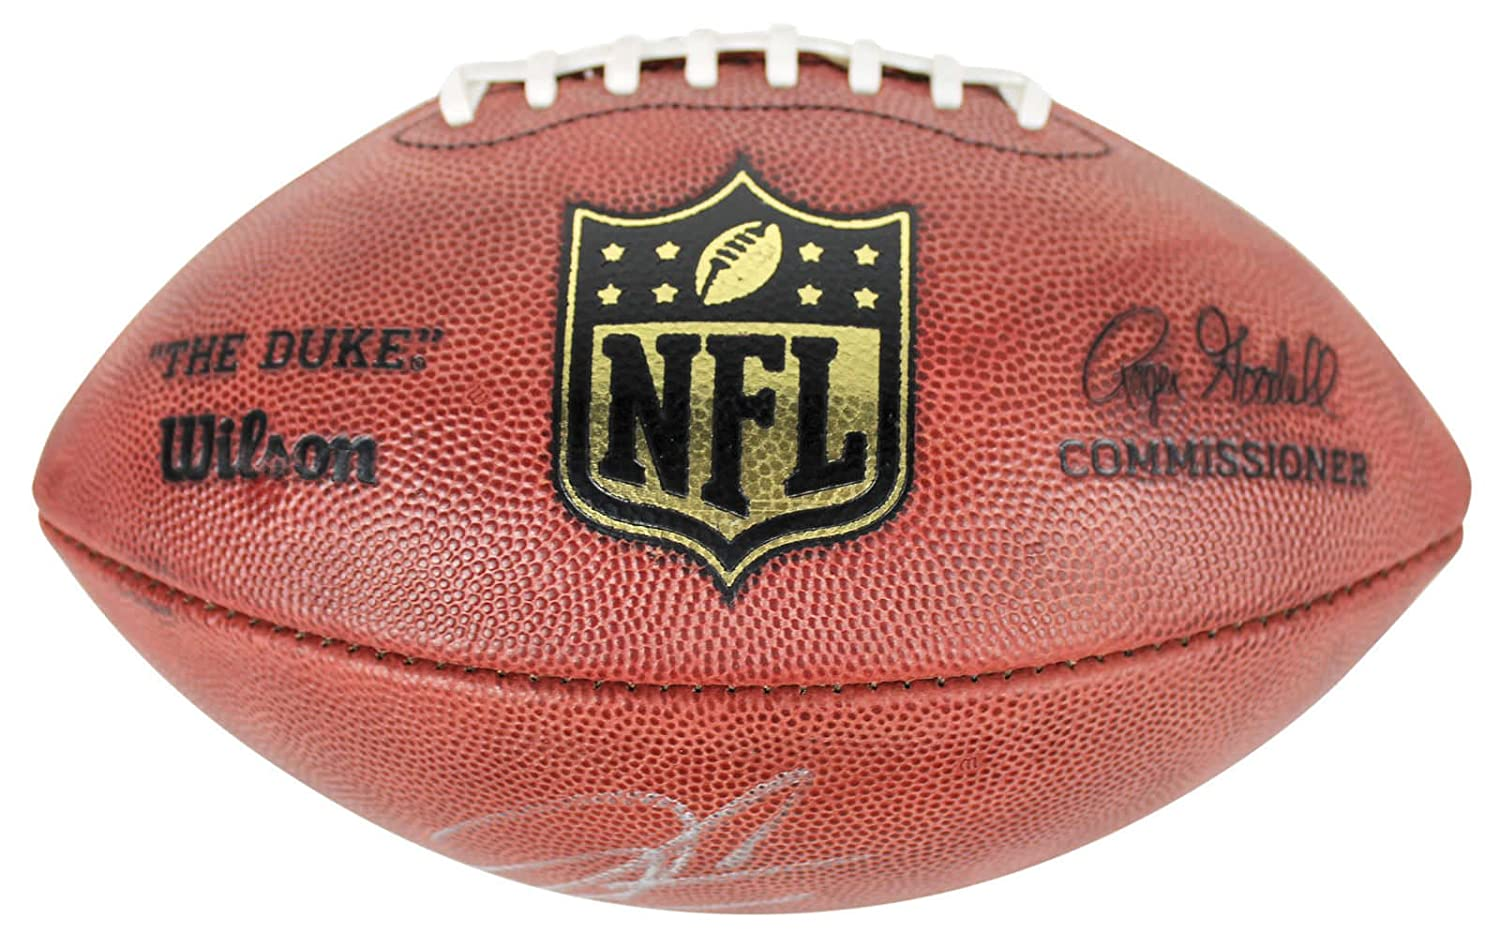 317d9358db9 Autographed Raiders Derek Carr Certified Signed NFL The Duke Football -  PSA DNA Certified at Amazon s Sports Collectibles Store